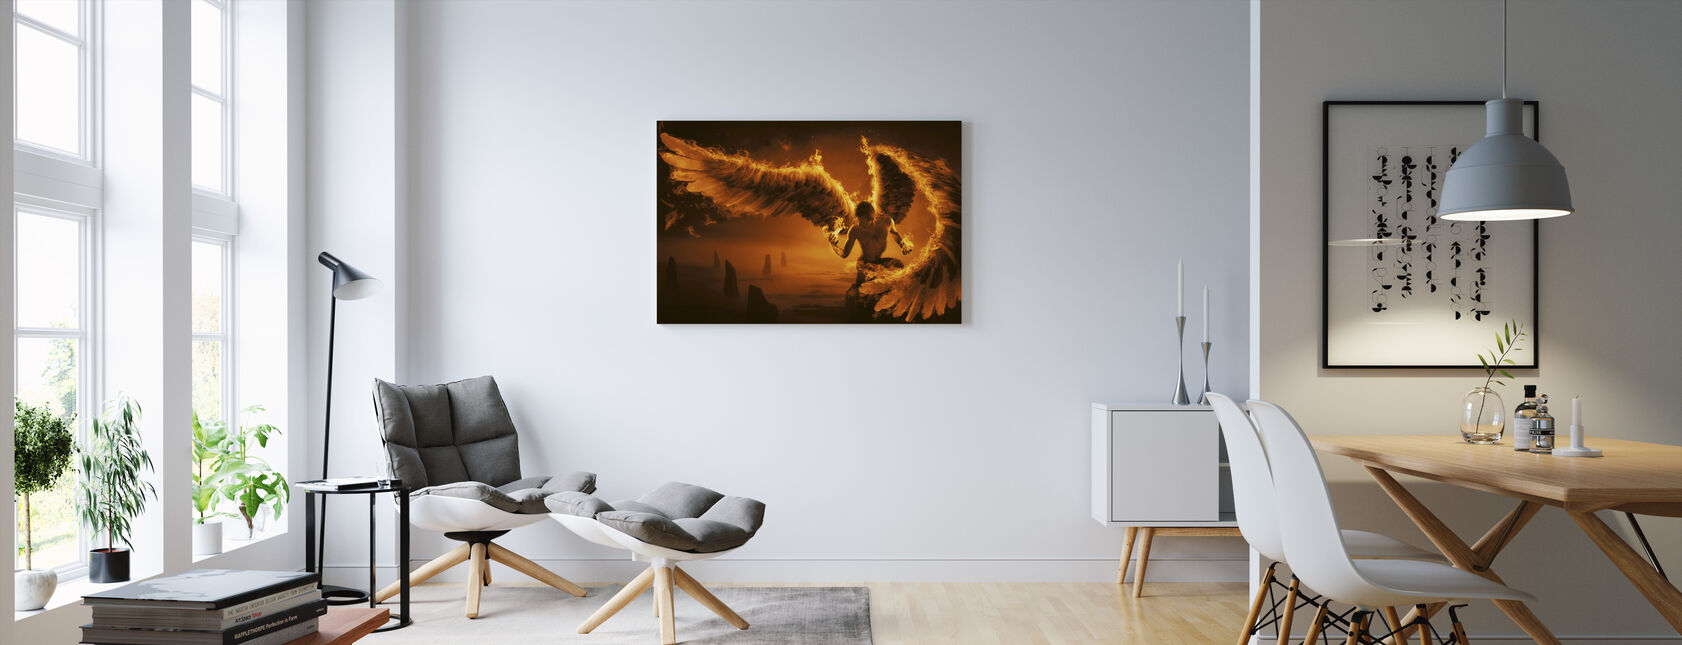 Fiery - Canvas print - Living Room